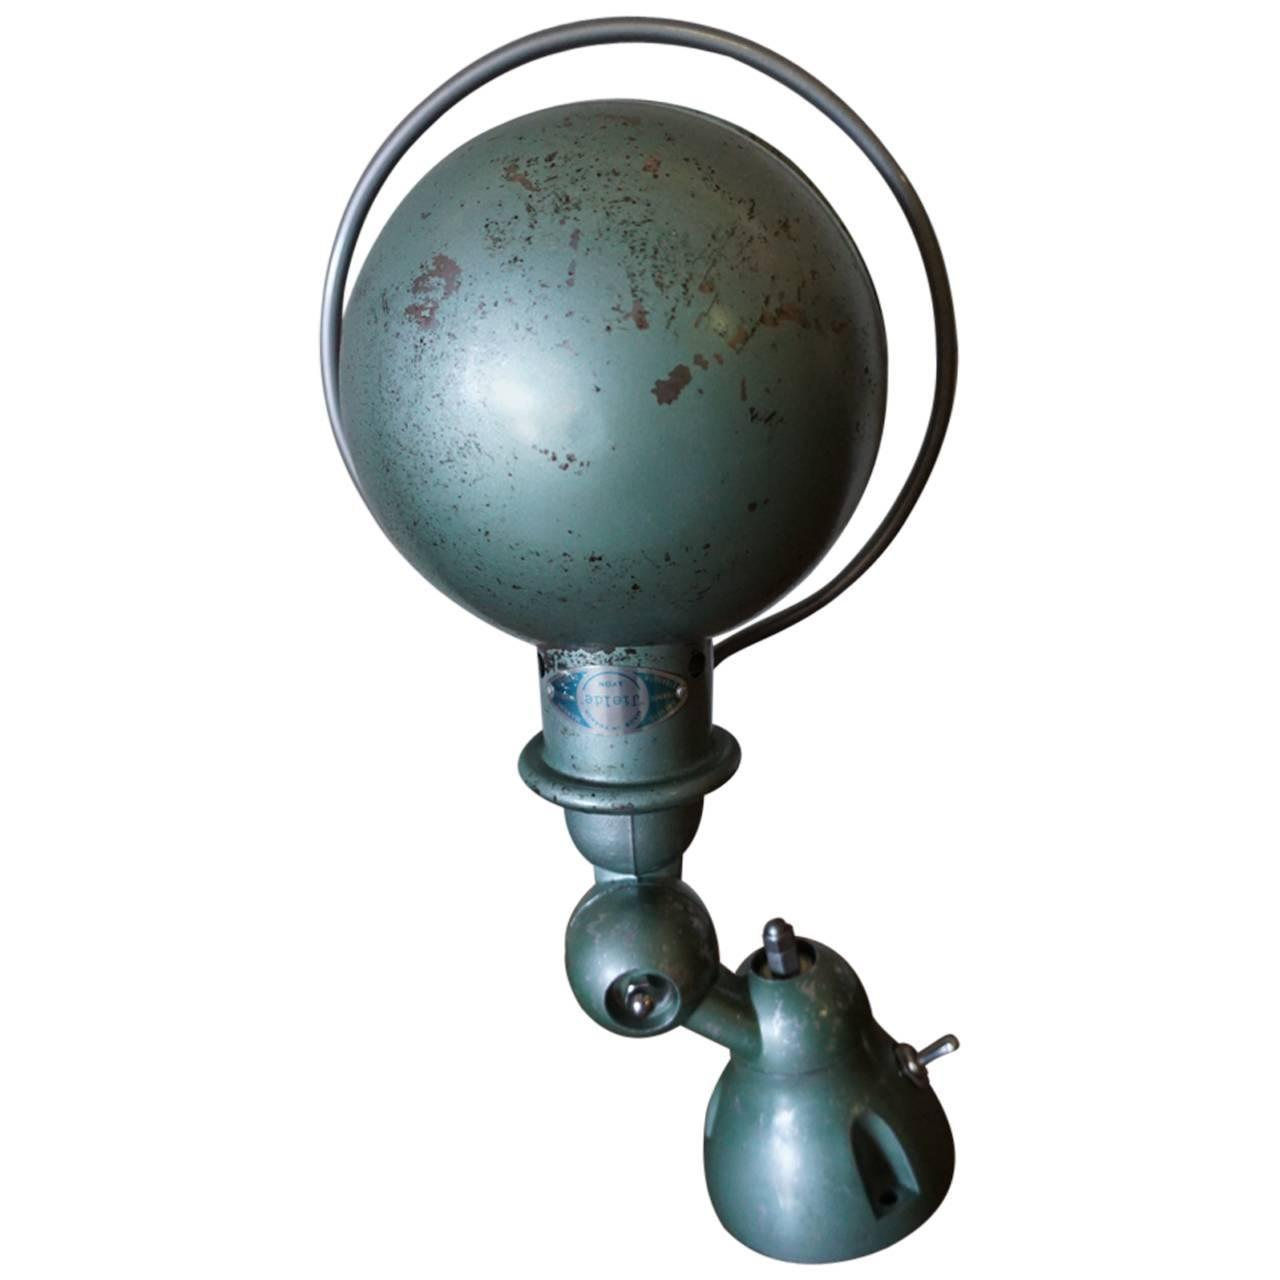 Green Industrial French Wall Light By Jean-Louis Domecq